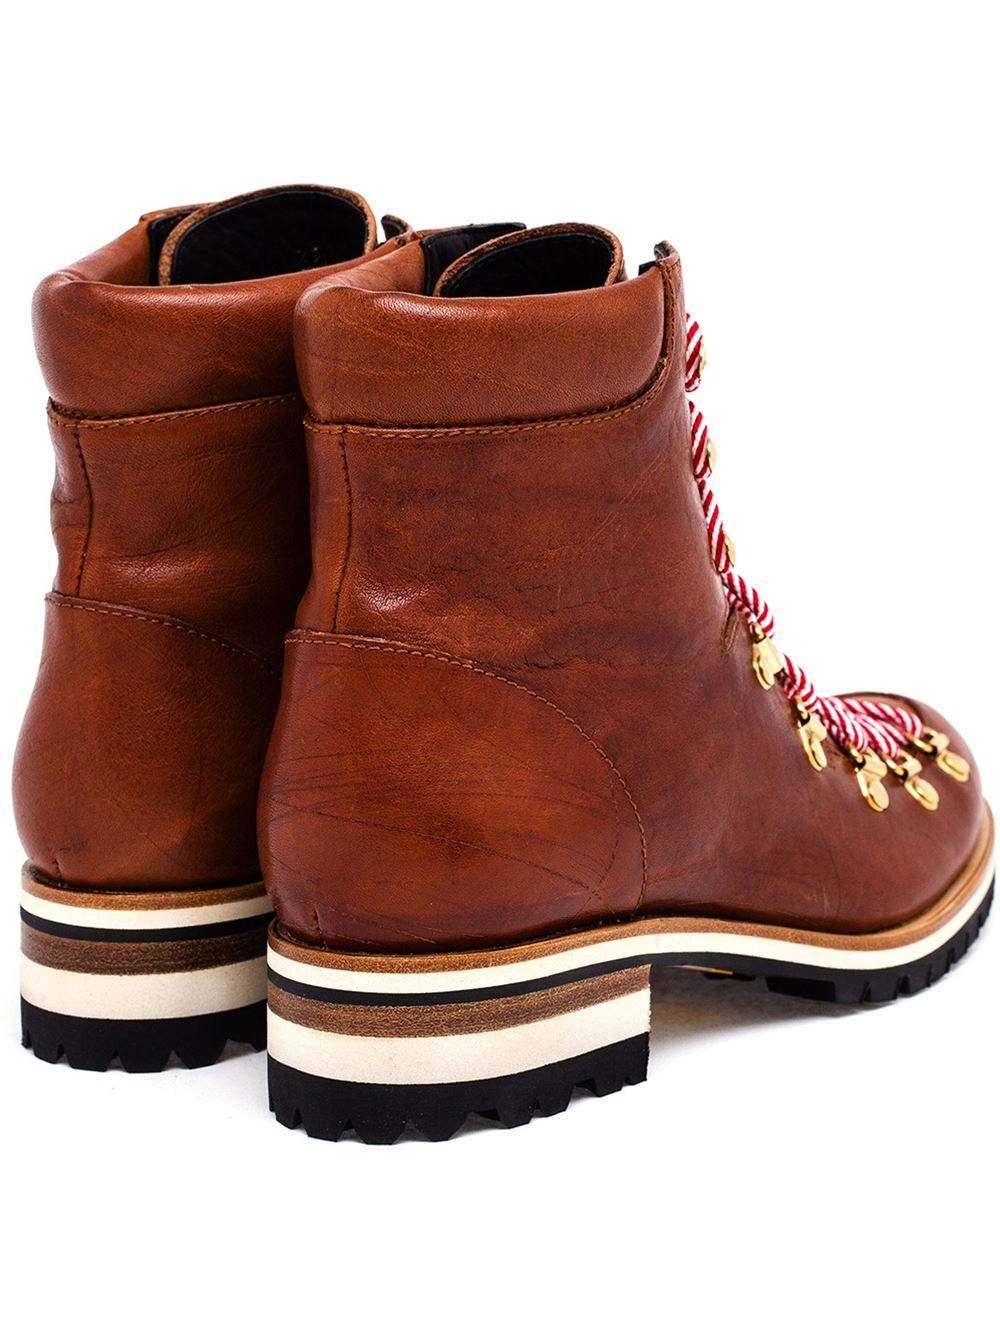 Rupert Sanderson Hiking Style Ankle Boots In Brown Lyst